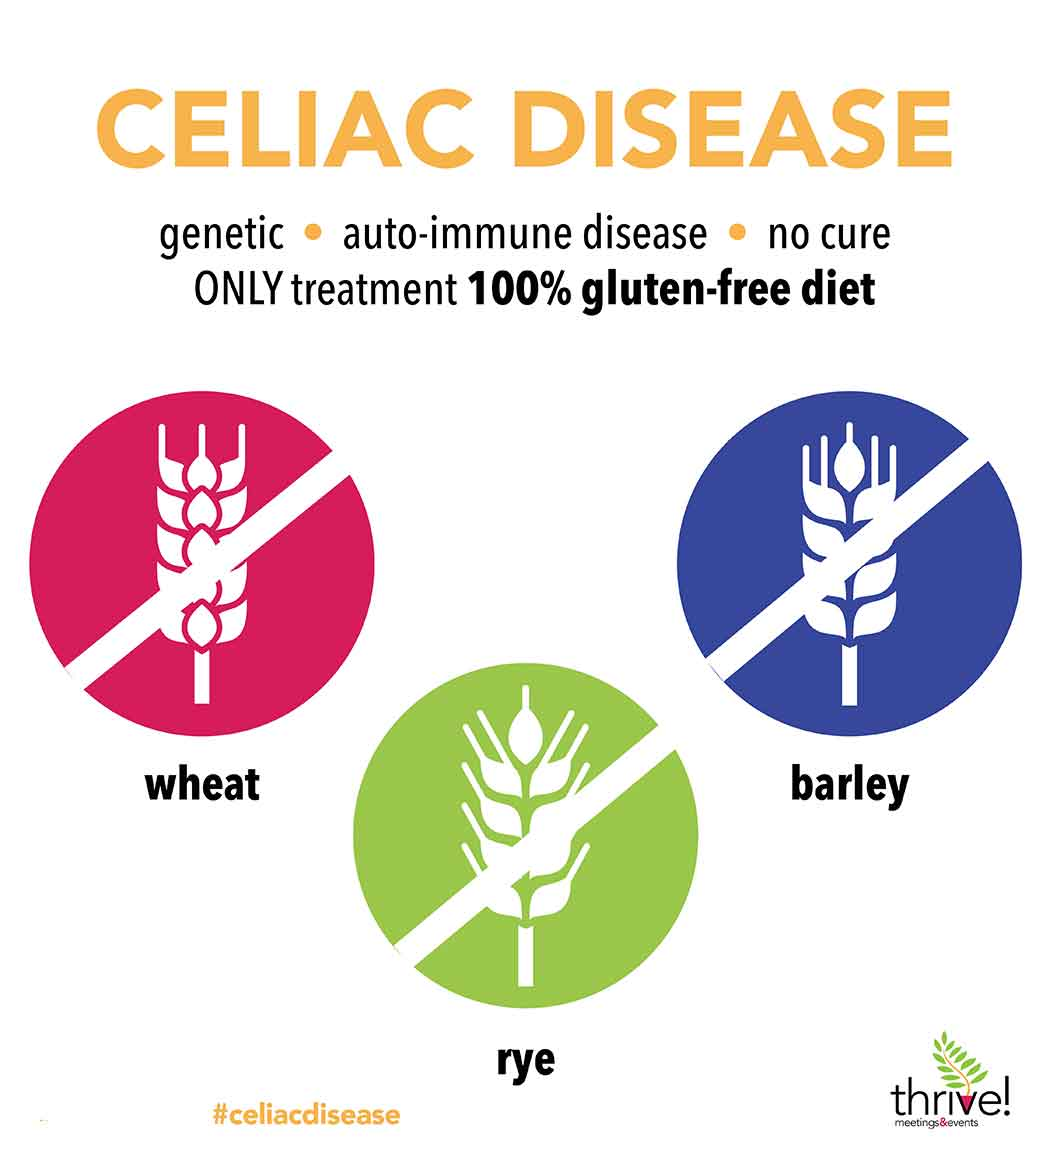 Celiac Disease Infographic showing Wheat, Rye and Barley as the three grains to avoid